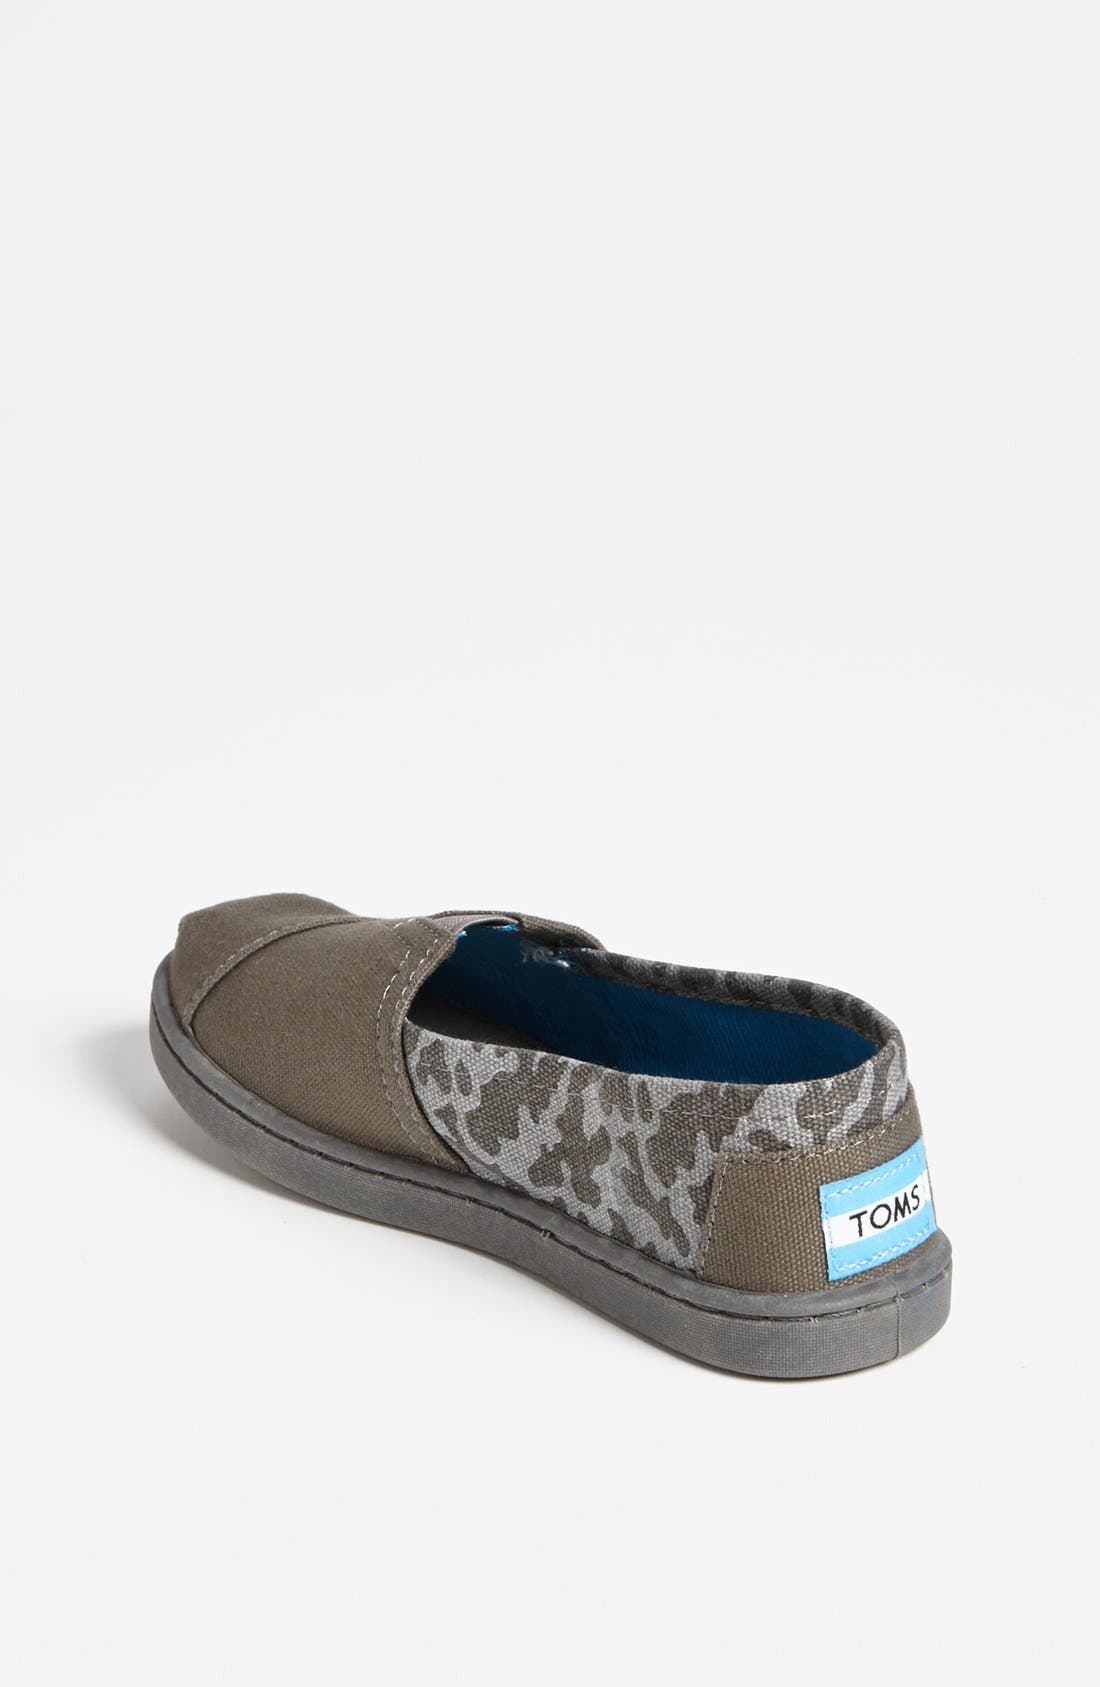 Alternate Image 2  - TOMS 'Classic - Camo' Slip-On (Toddler, Little Kid & Big Kid)